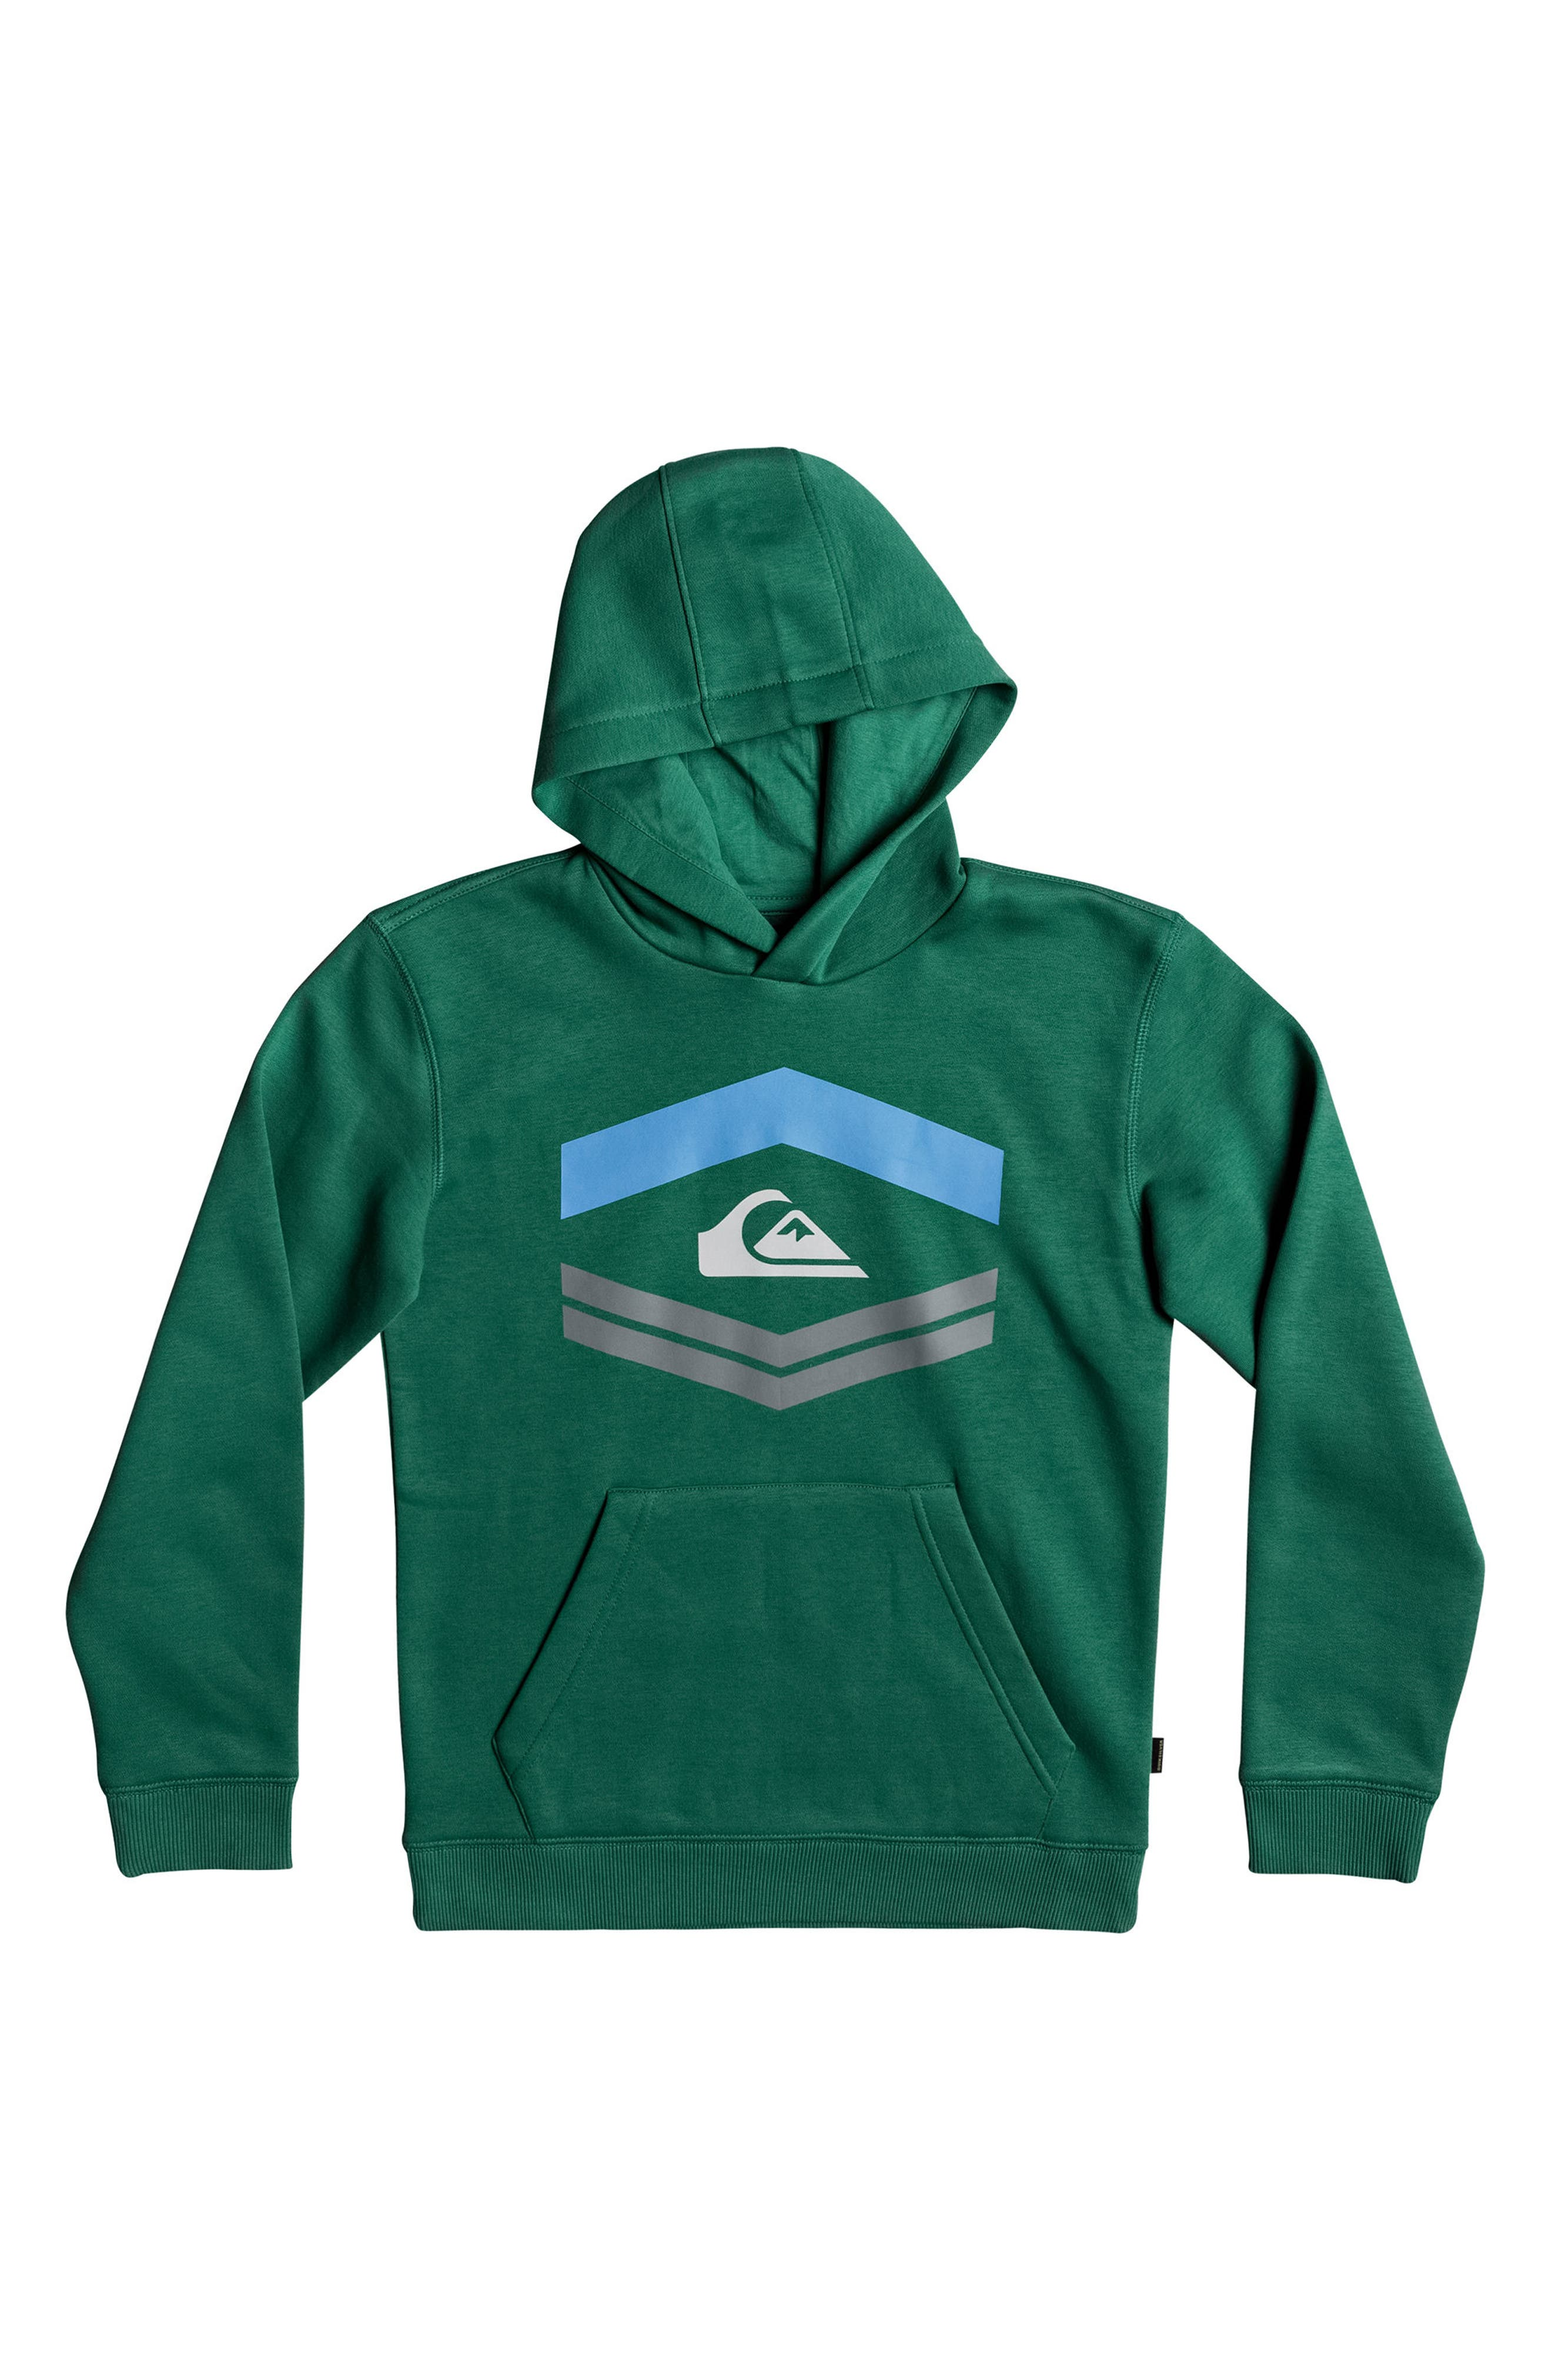 New Port Roca Graphic Pullover Hoodie,                             Main thumbnail 1, color,                             304